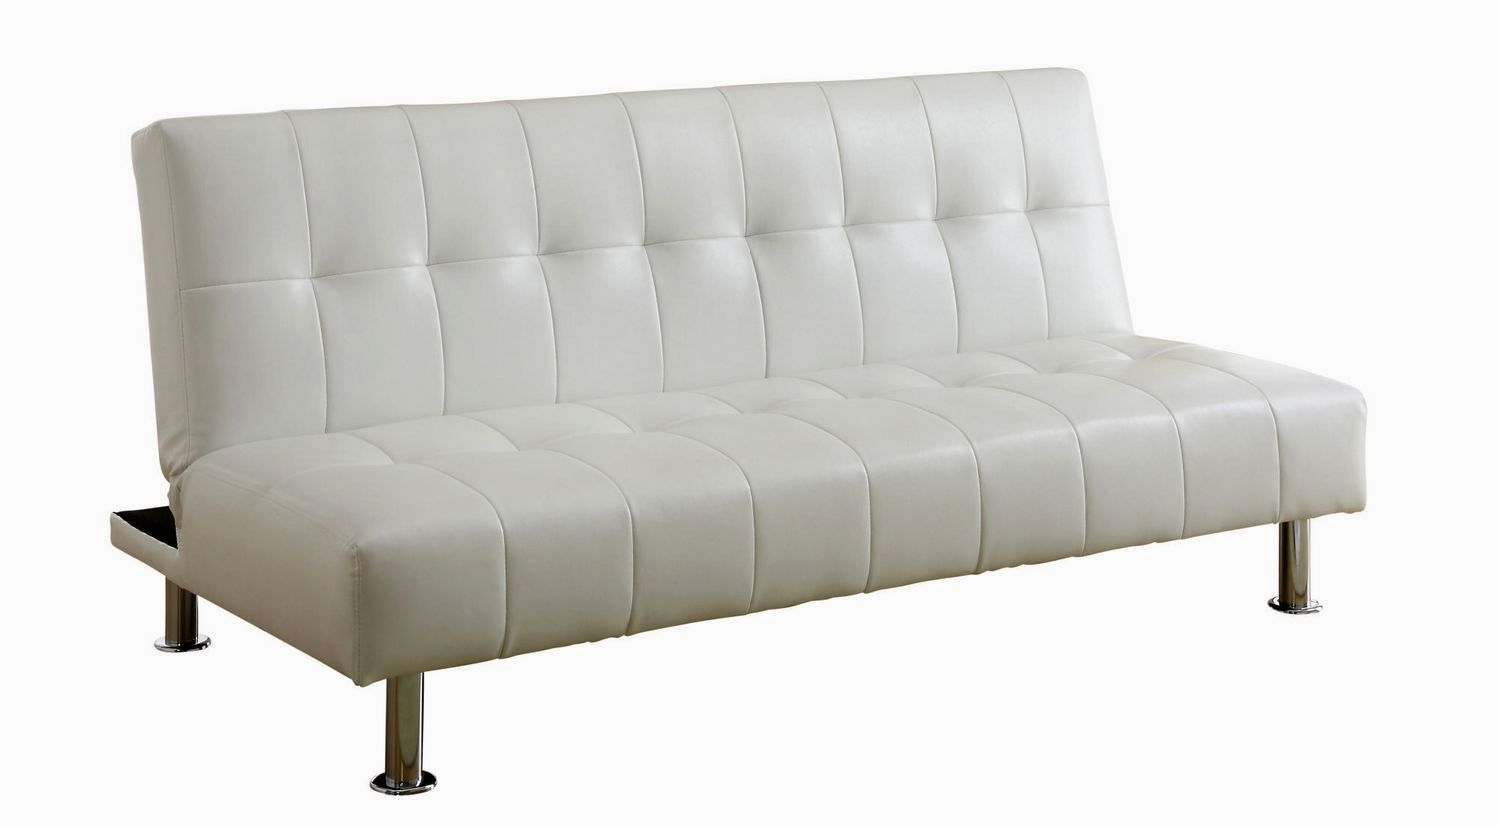 Fascinating Cheap Sofas For Under 100 Design Fantastic Photograph